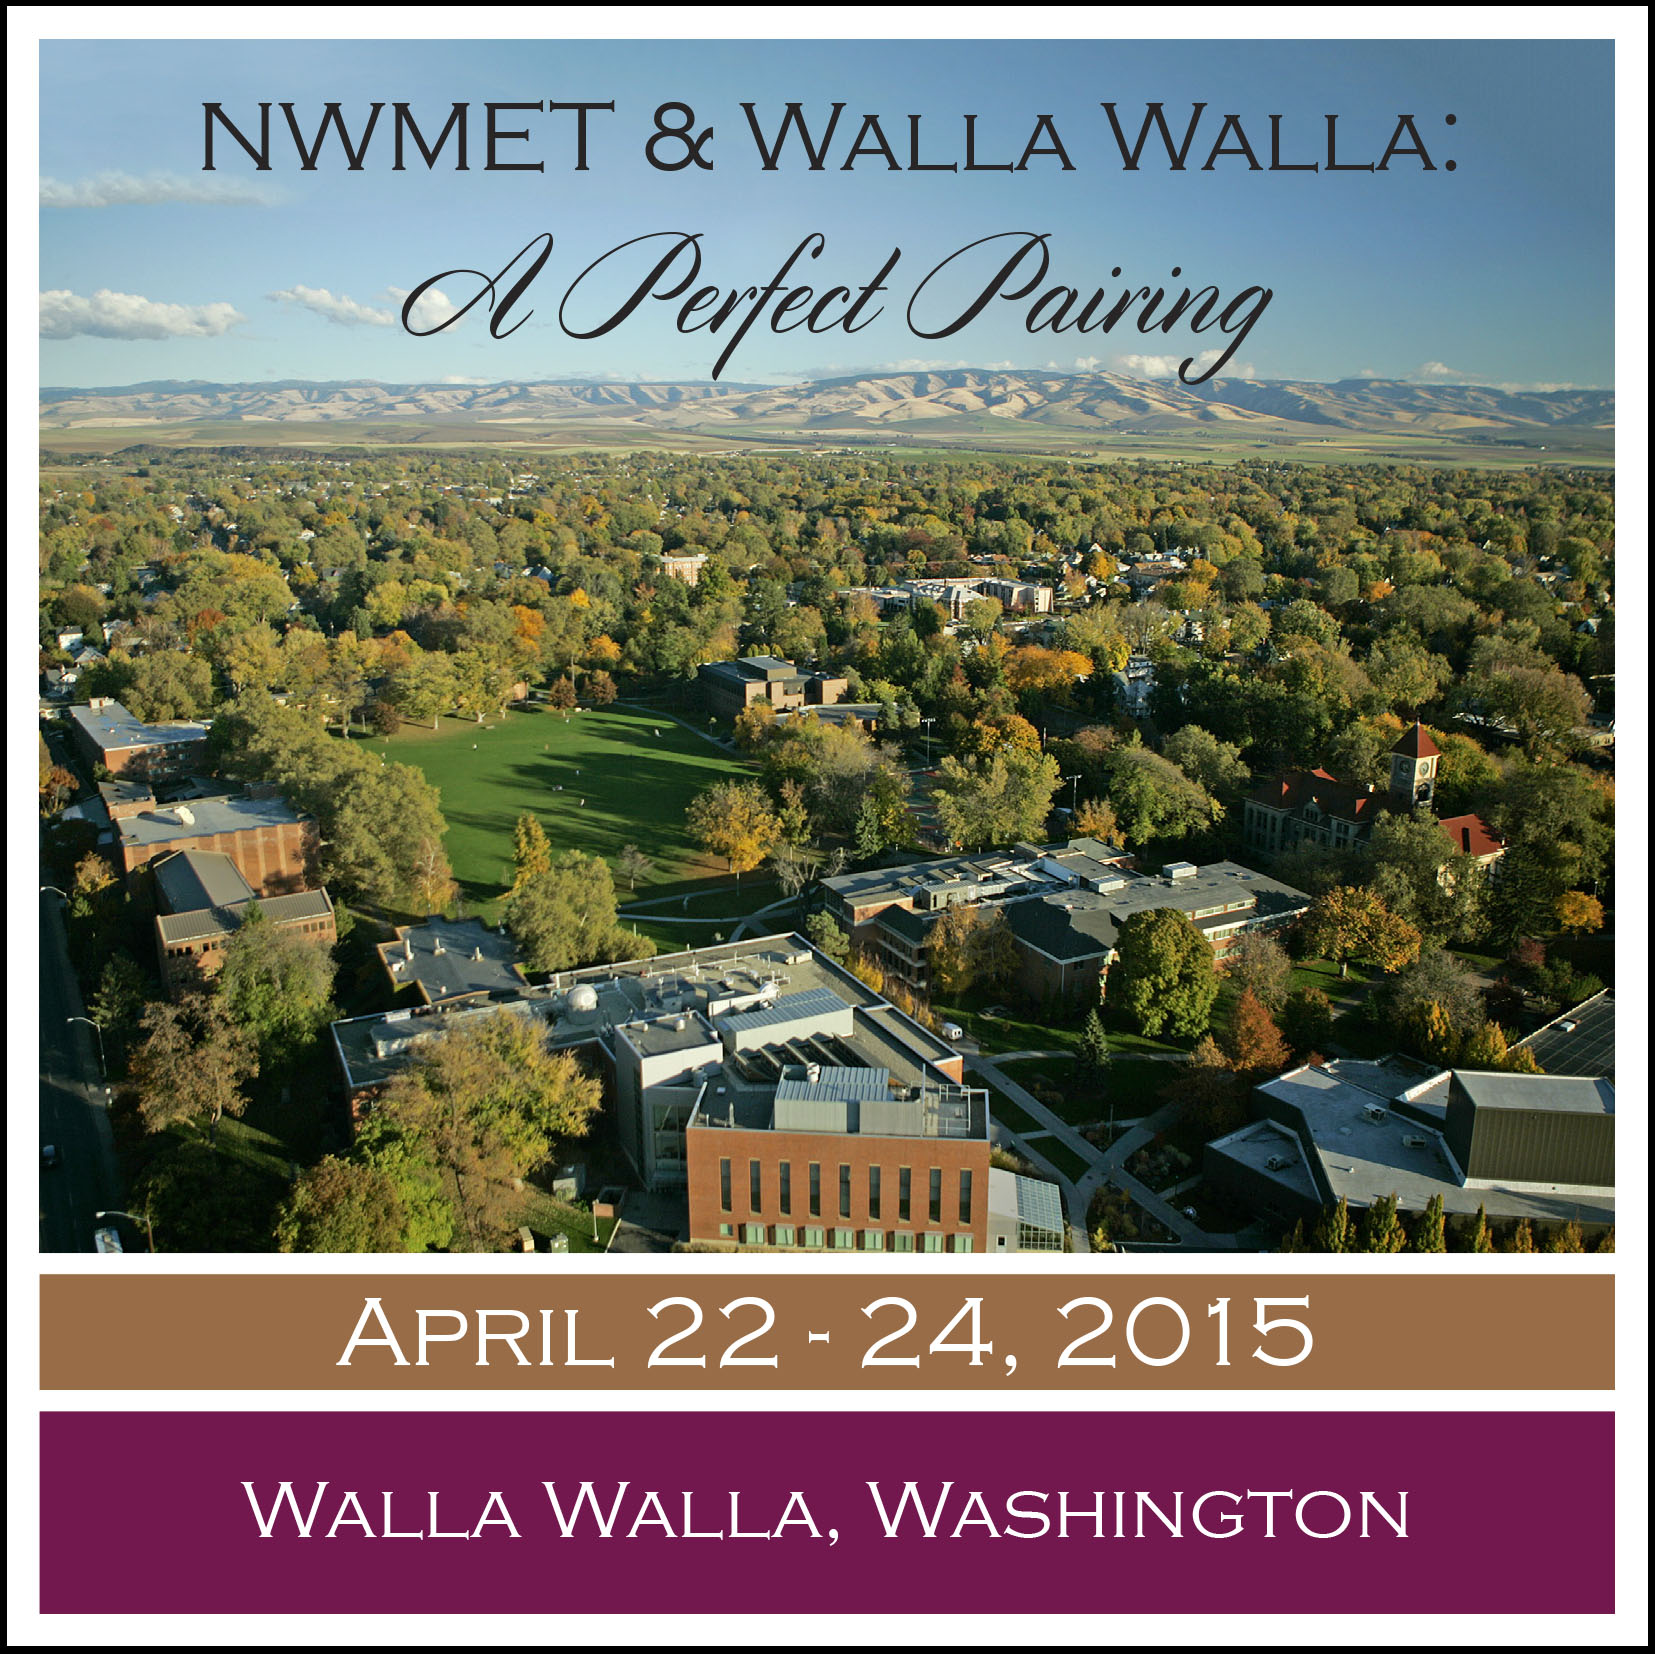 Conference theme image - NWMET & Walla Walla: A Perfect Pairing - April 22-24, 2015